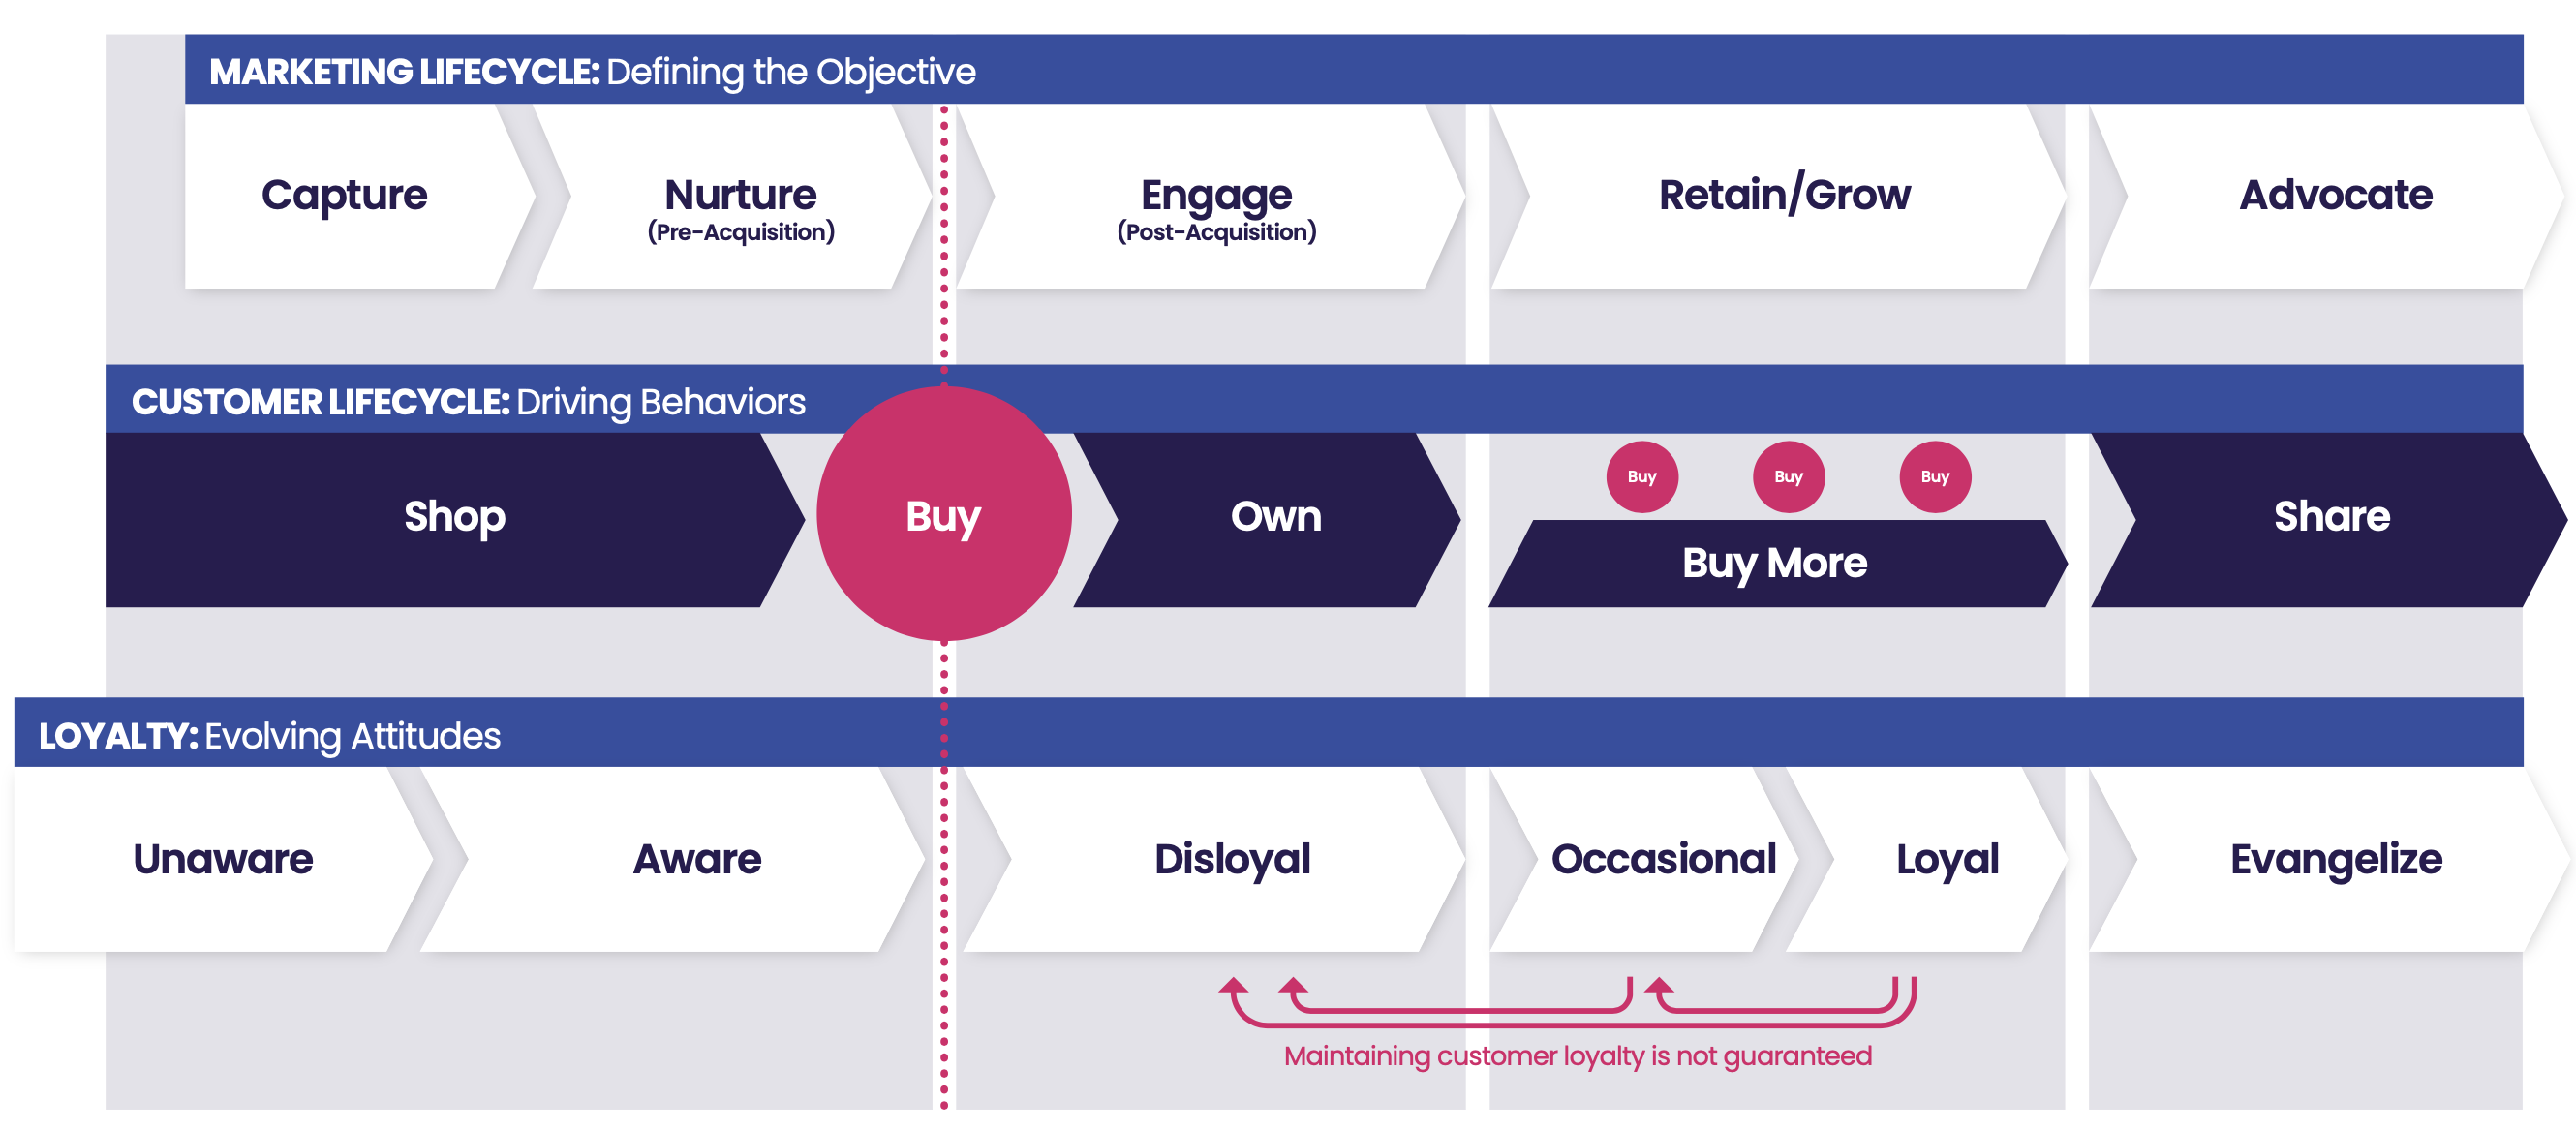 Better customer experience through lifecycle marketing